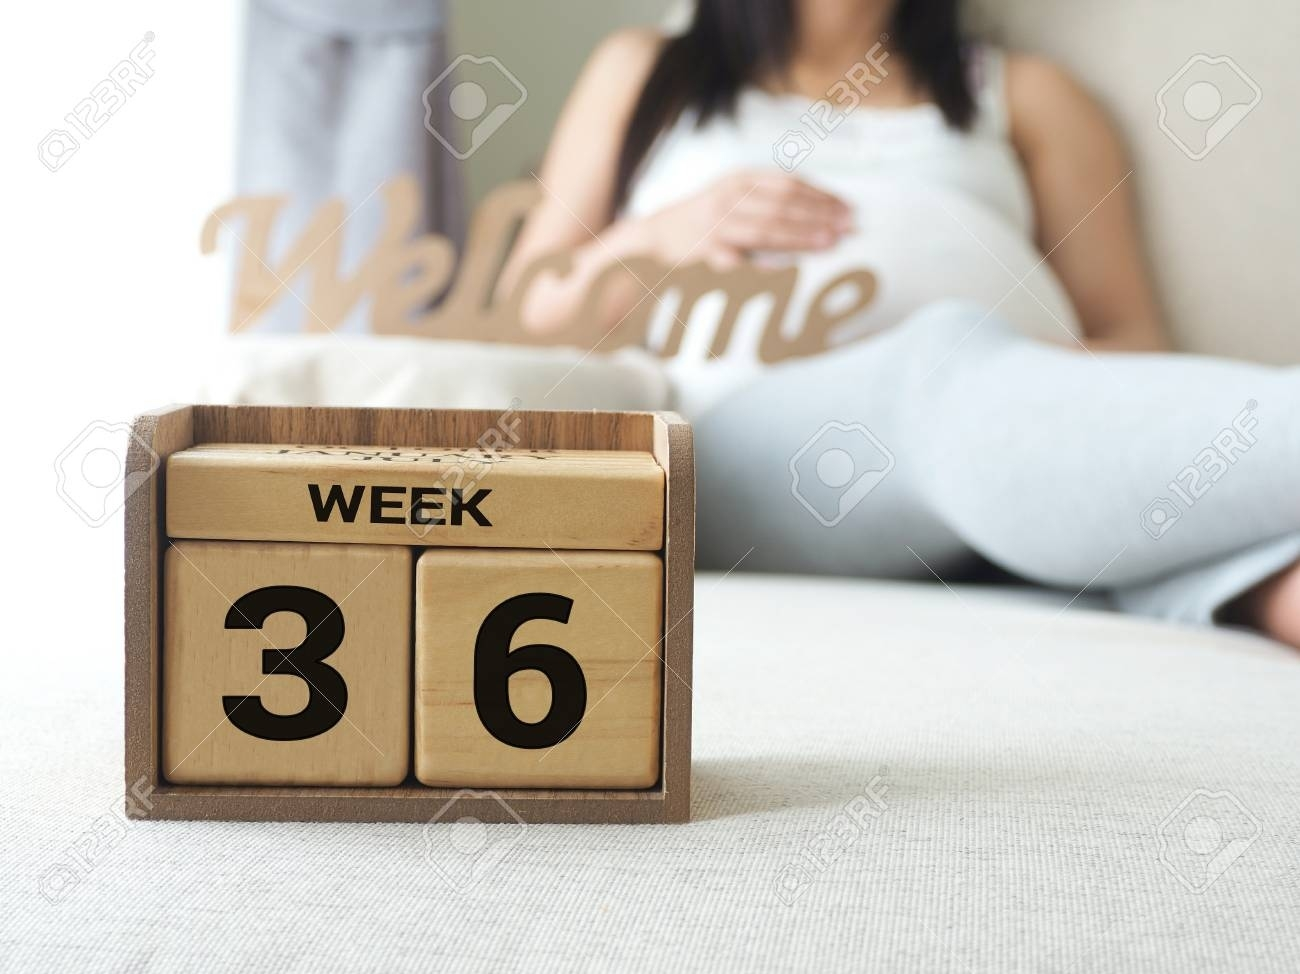 Calendar With Weeks 36 Of Pregnant With Pregnancy Woman Background Countdown Calendar In Weeks